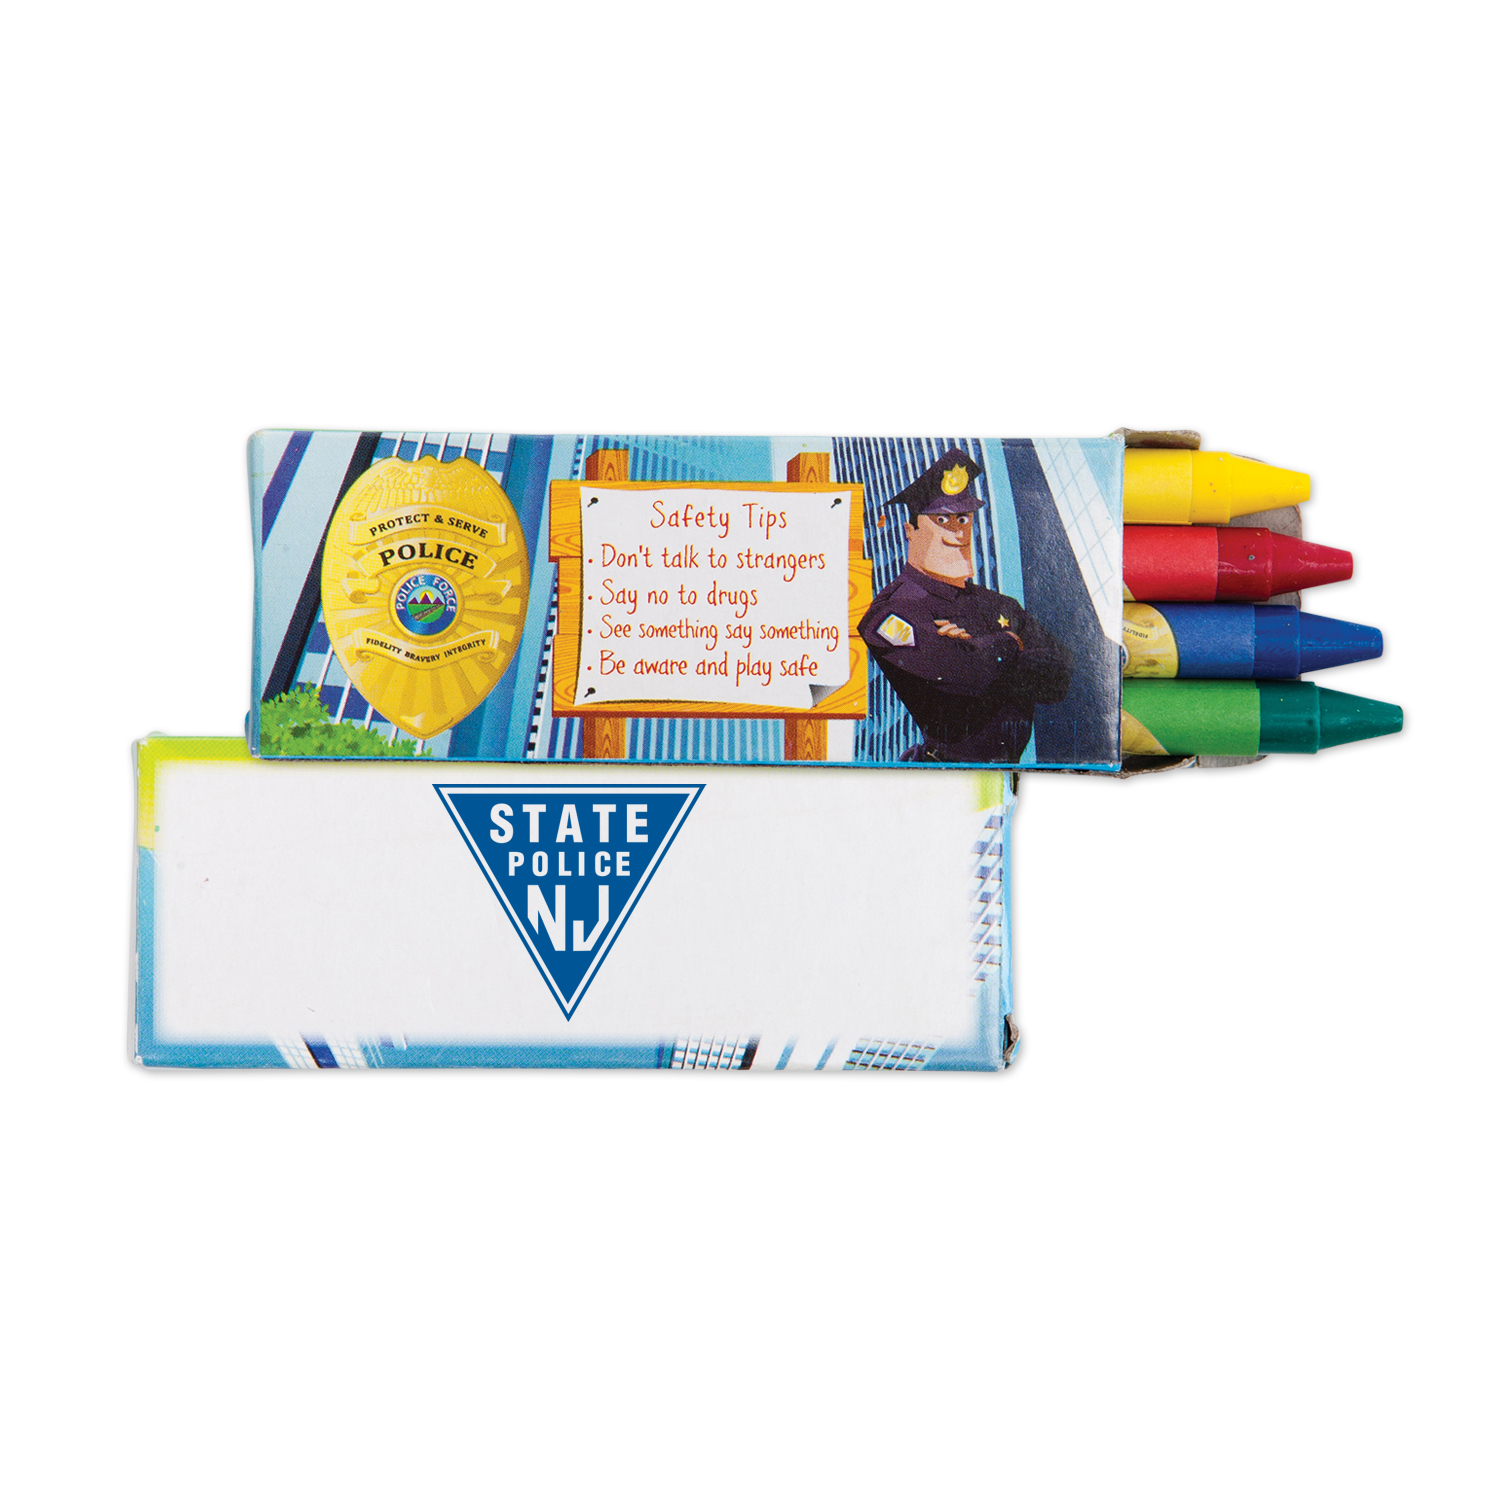 Police Safety Crayons